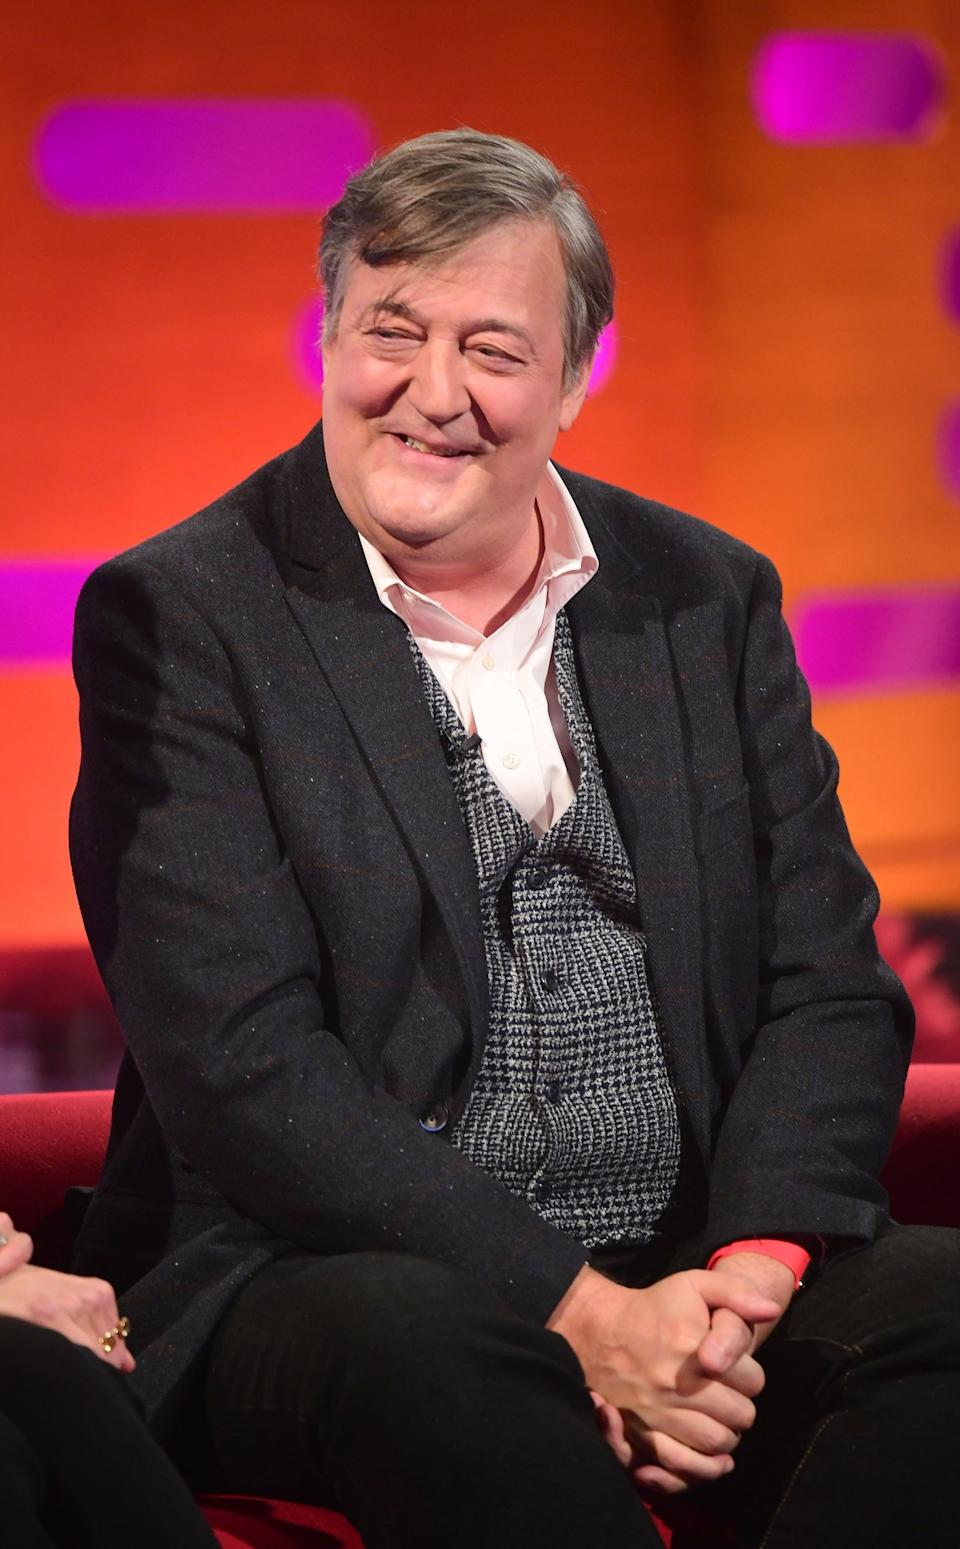 Fry, seen here in 2018, has also spoken about feeling suicidal thoughts (PA Images on behalf of So TV)